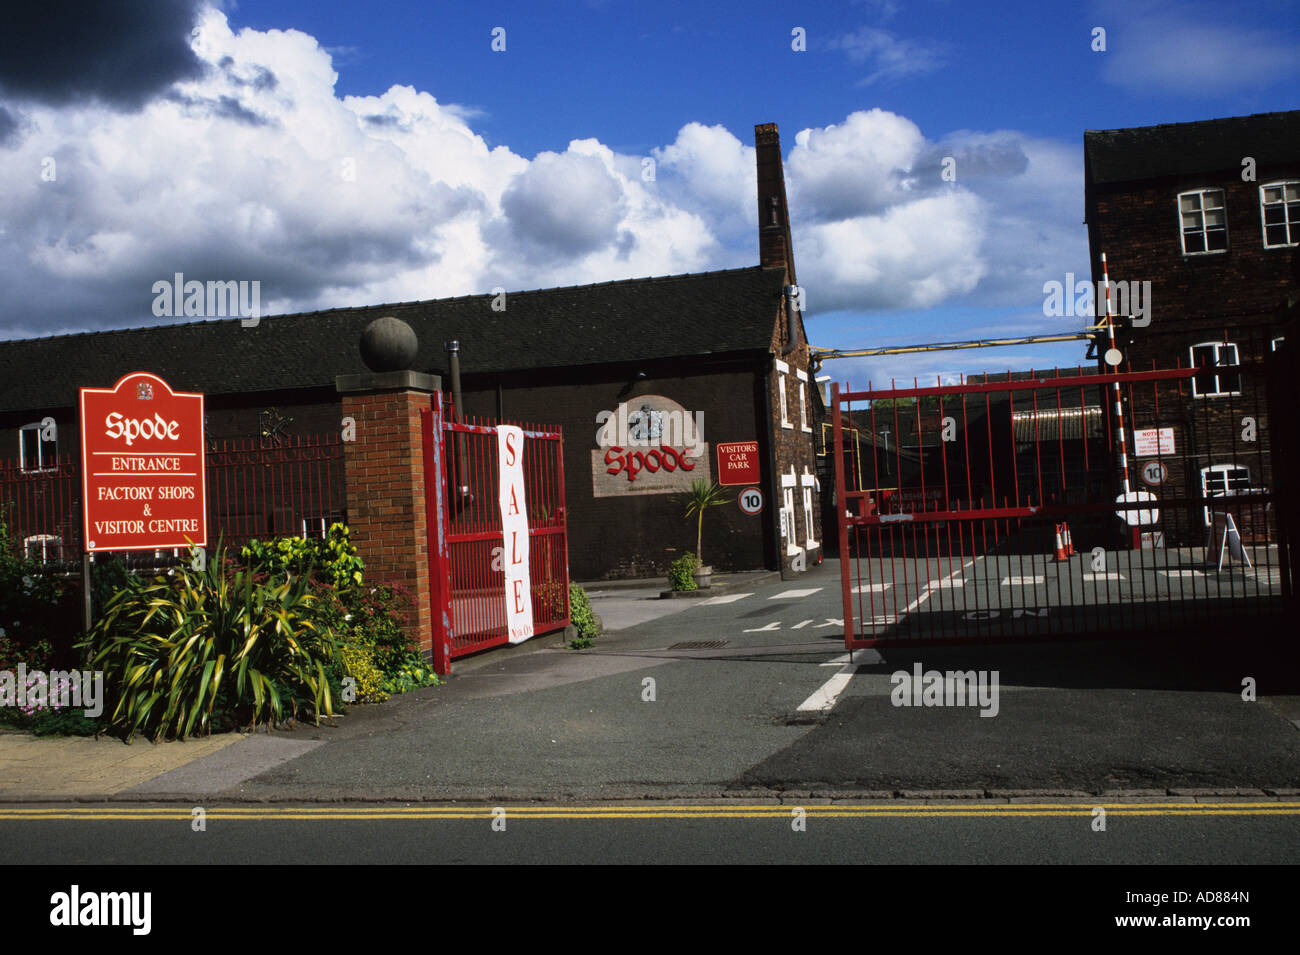 Exhibition Stands Stoke On Trent : Spode factory in stoke on trent stock photo